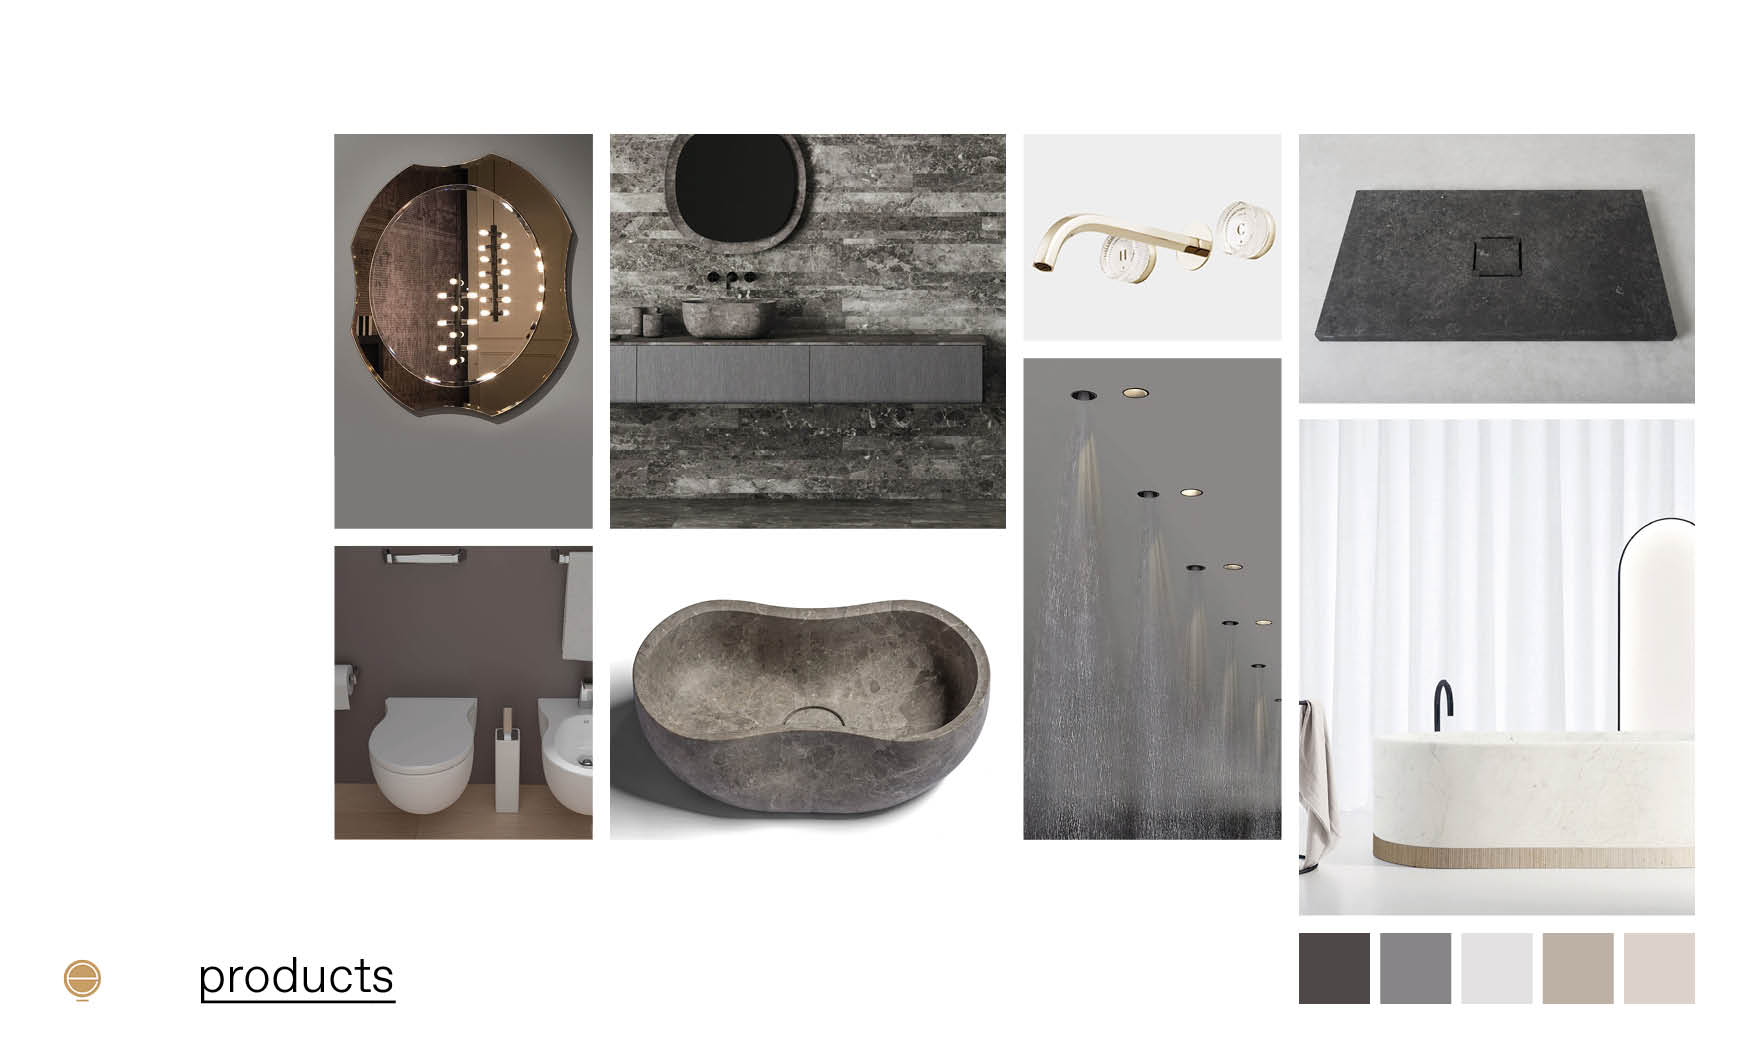 products composition of luxury Italian bathrooms made by Esperiri